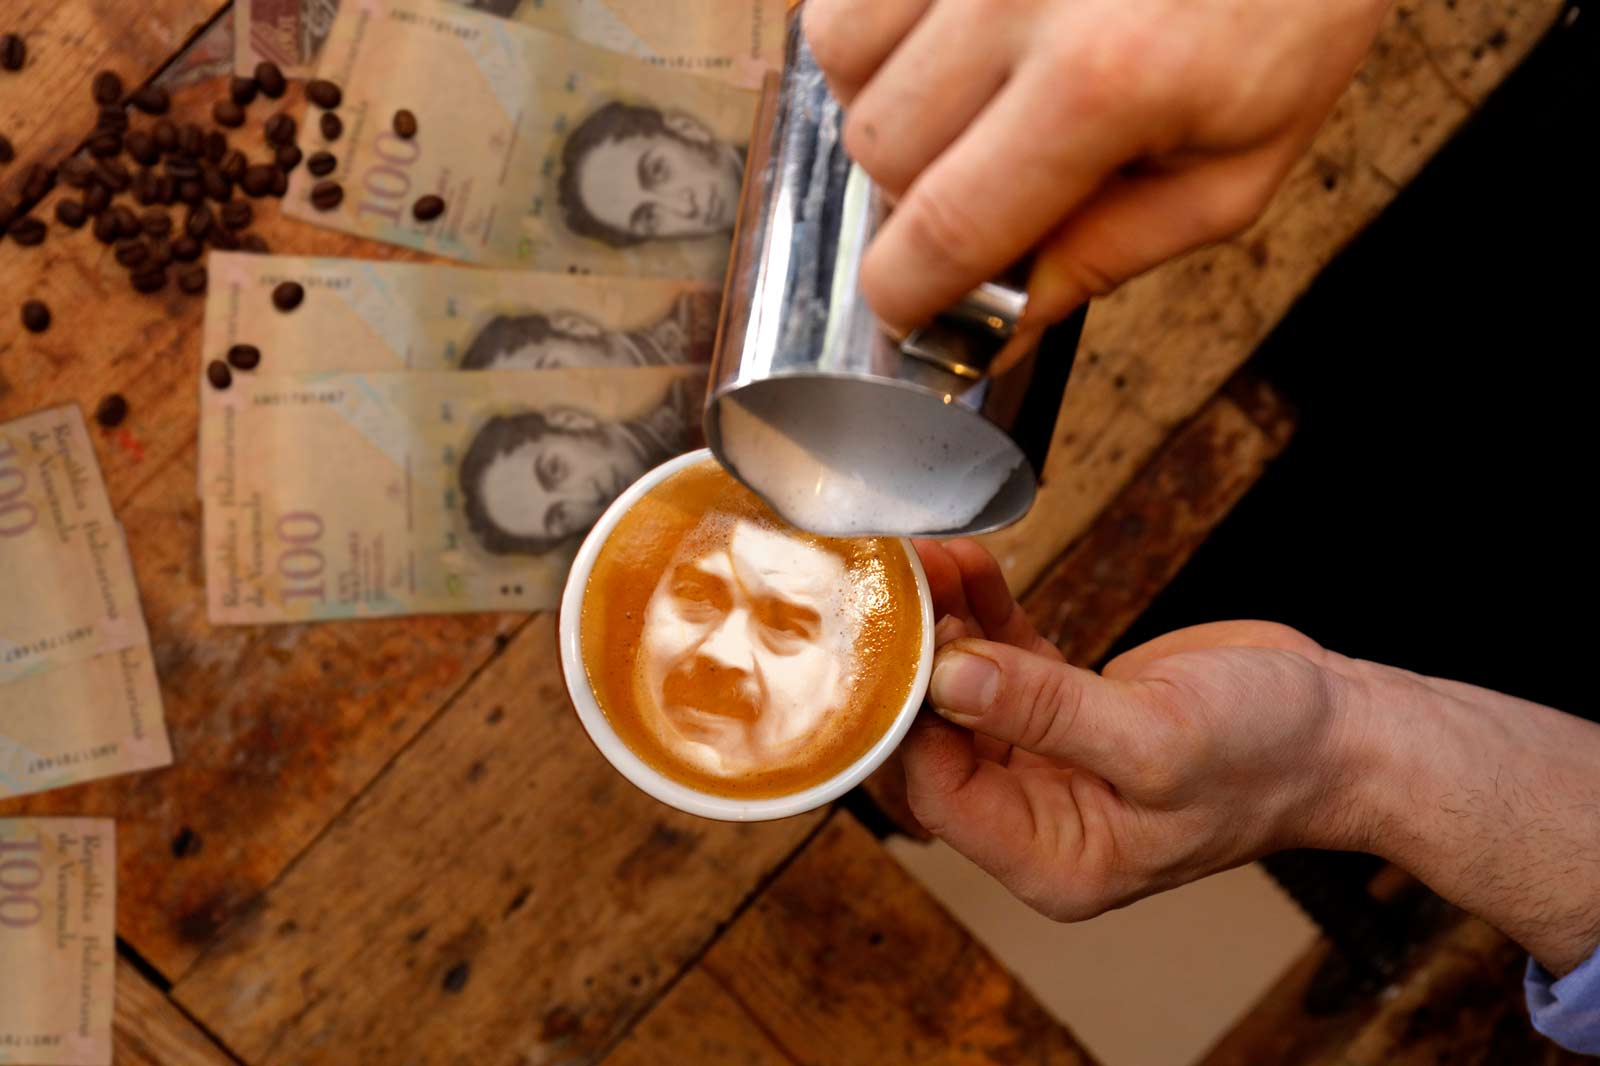 Tracking Hyperinflation One Cup Of Coffee At A Time